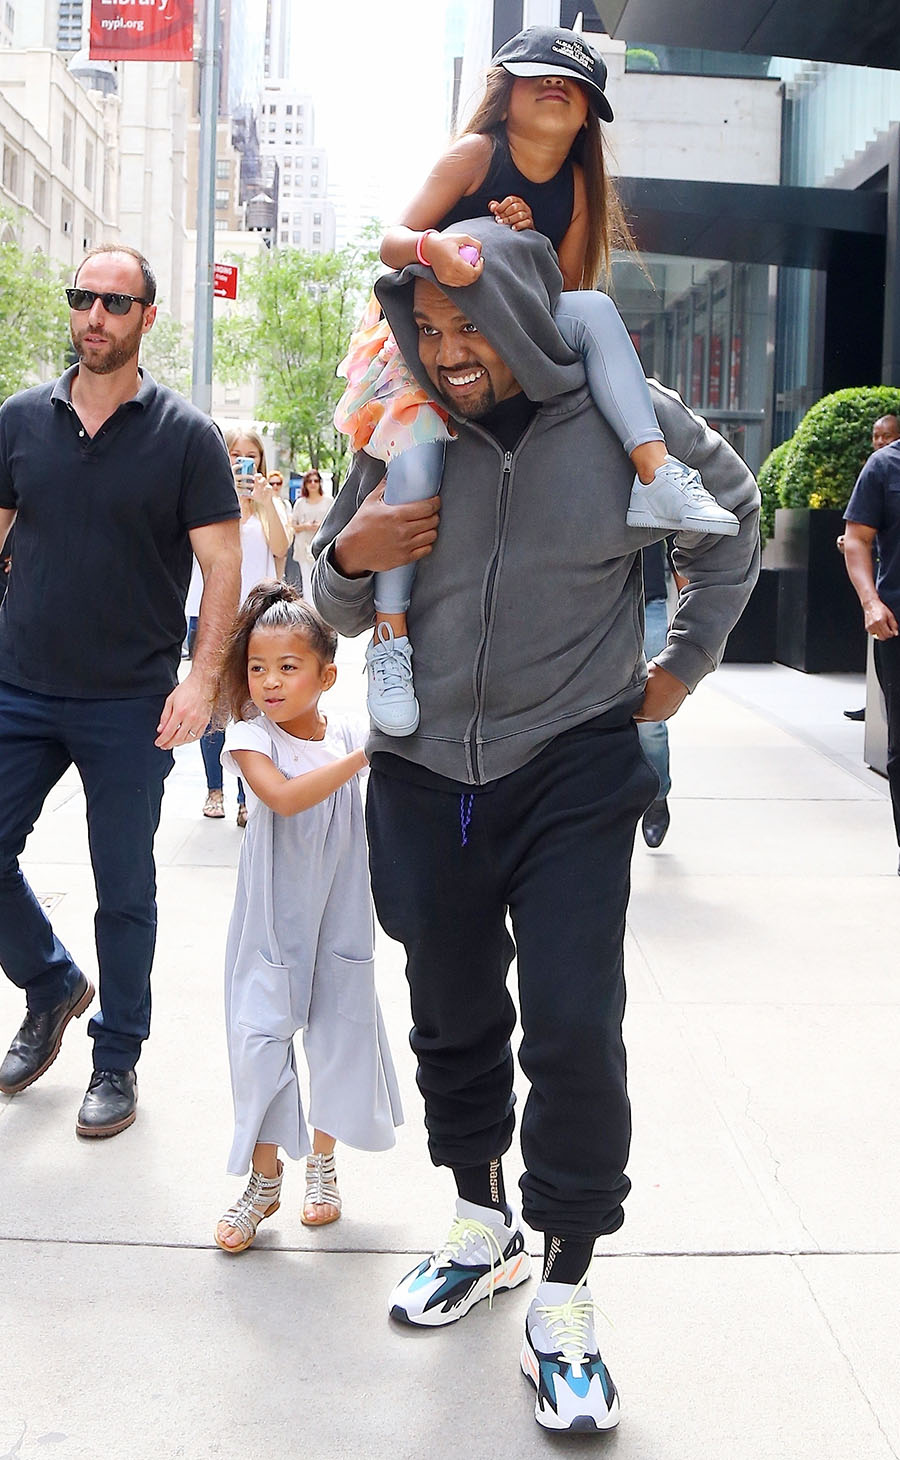 Kanye West Is Seen Leaving His Hotel With His Daughter